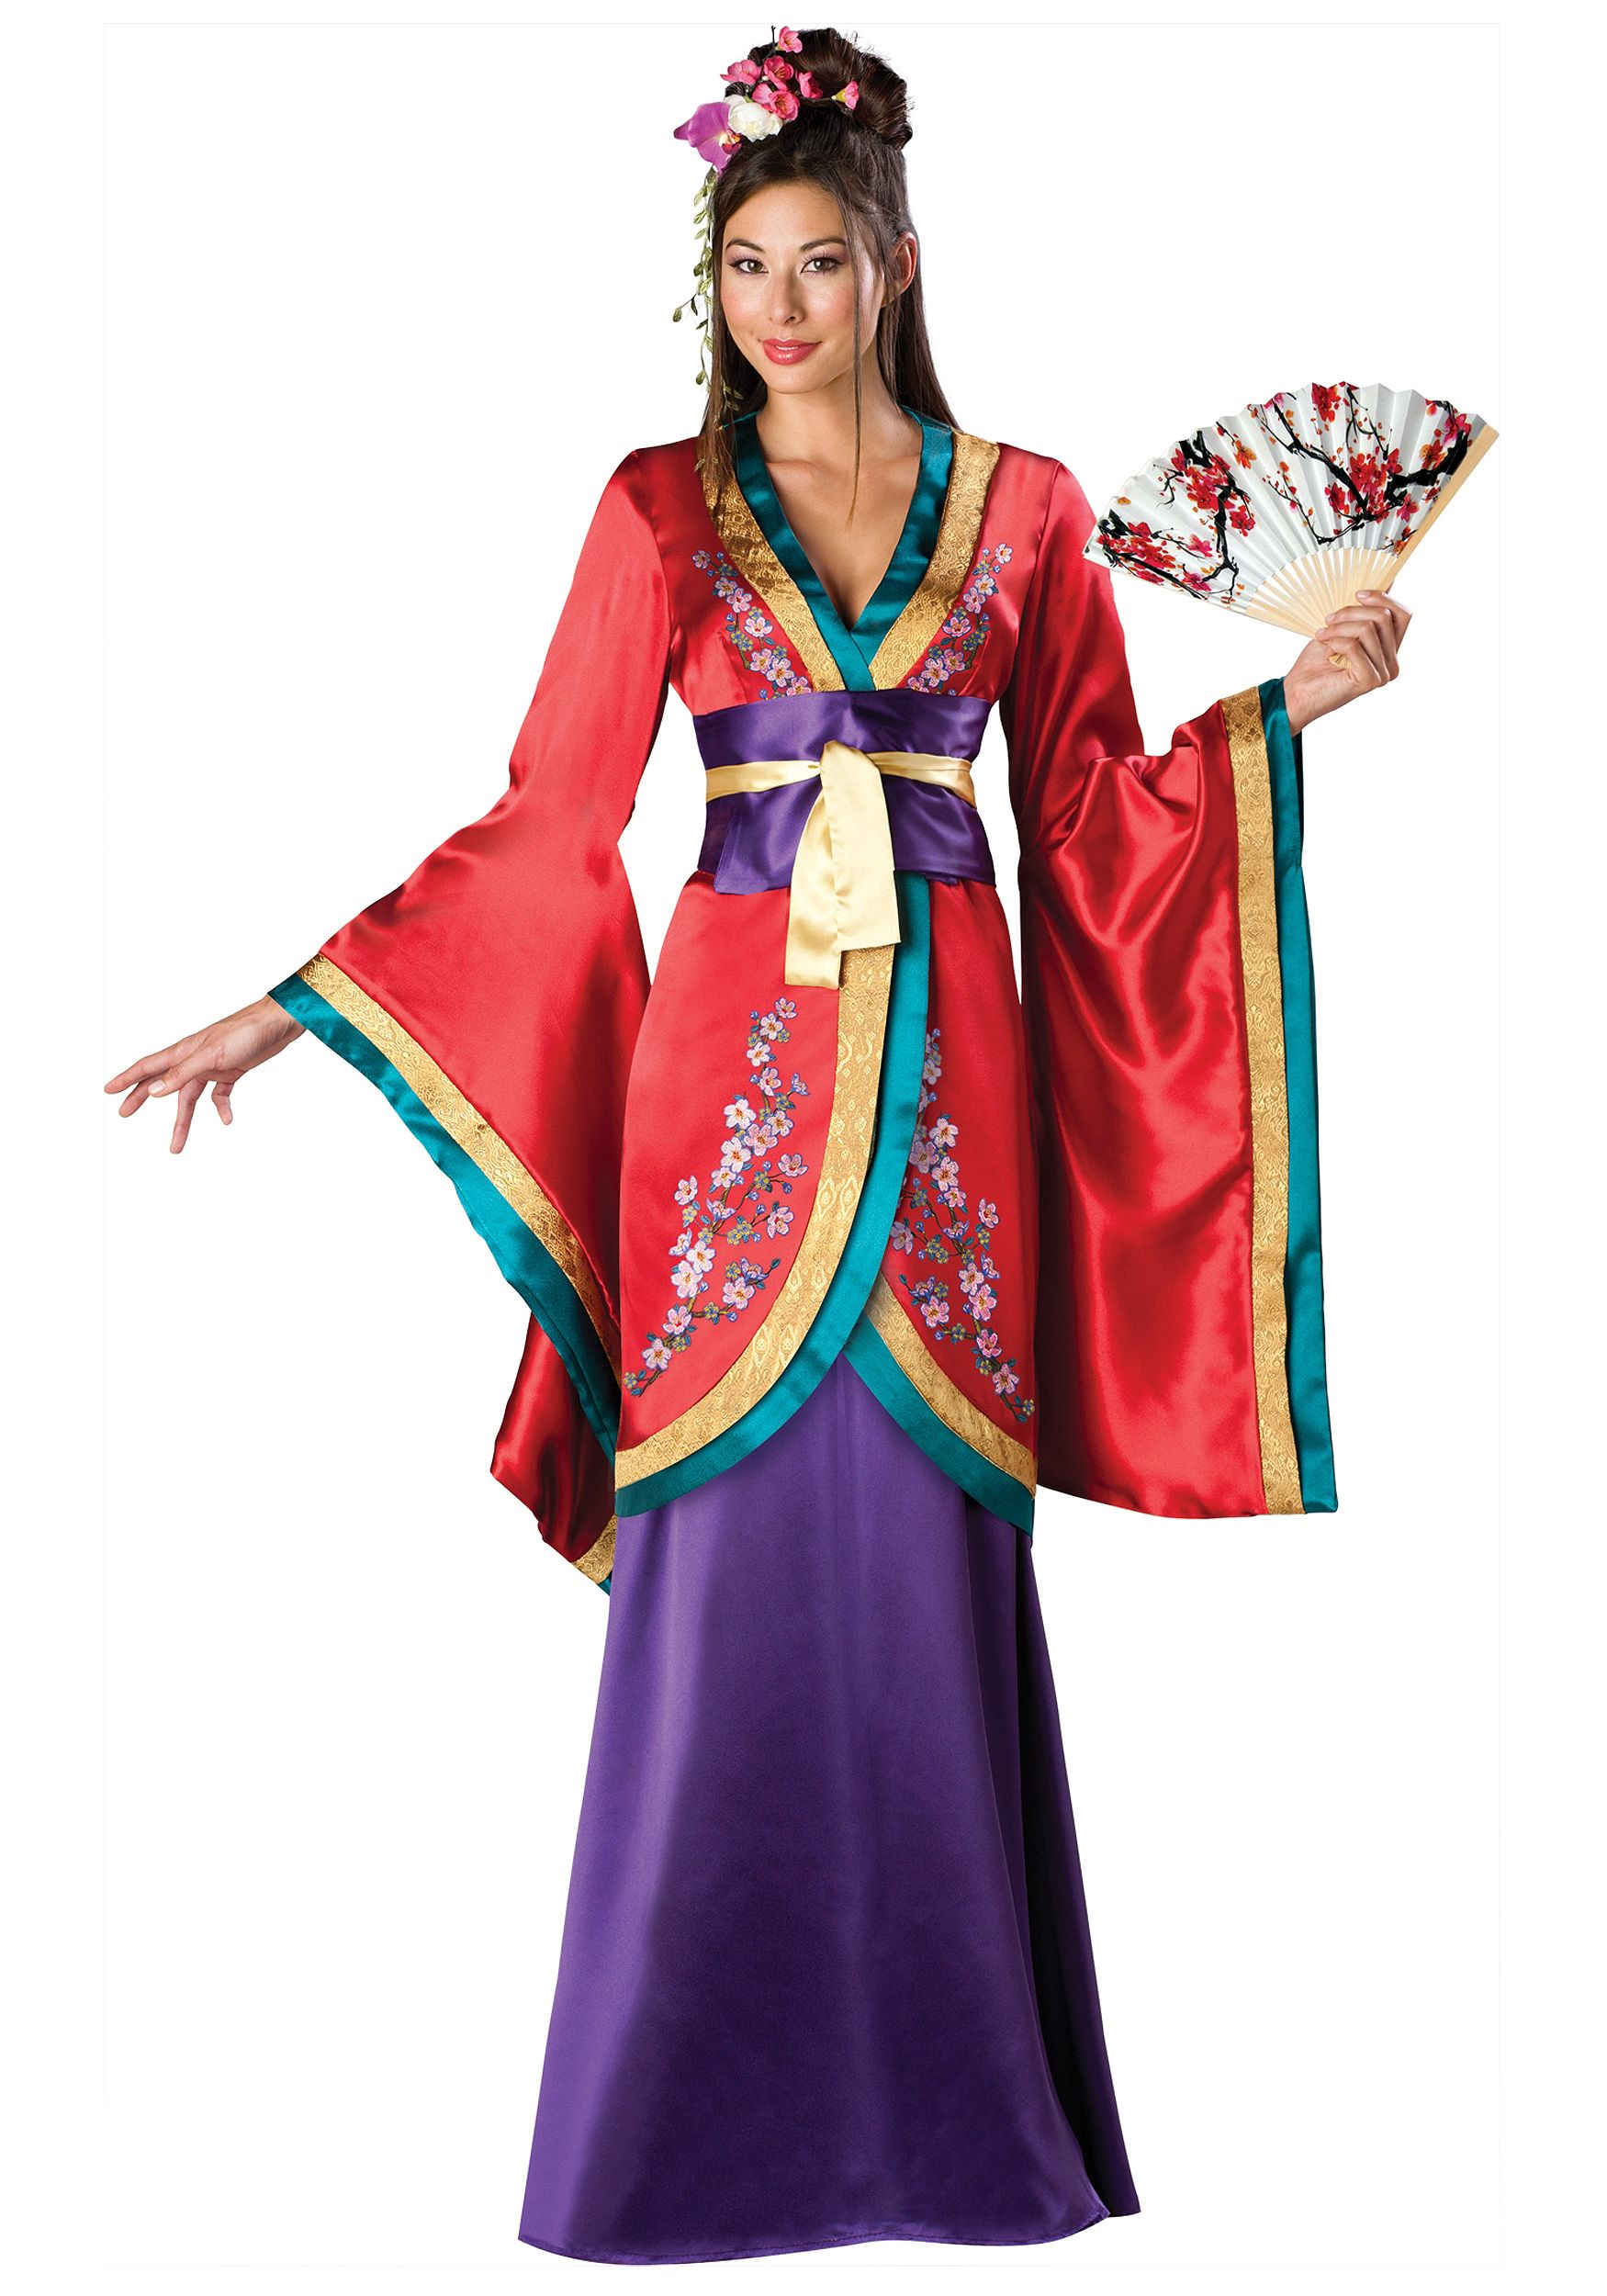 78f533f078b Geisha Oriental Chinese Japanese Adult Women Halloween Costume ...